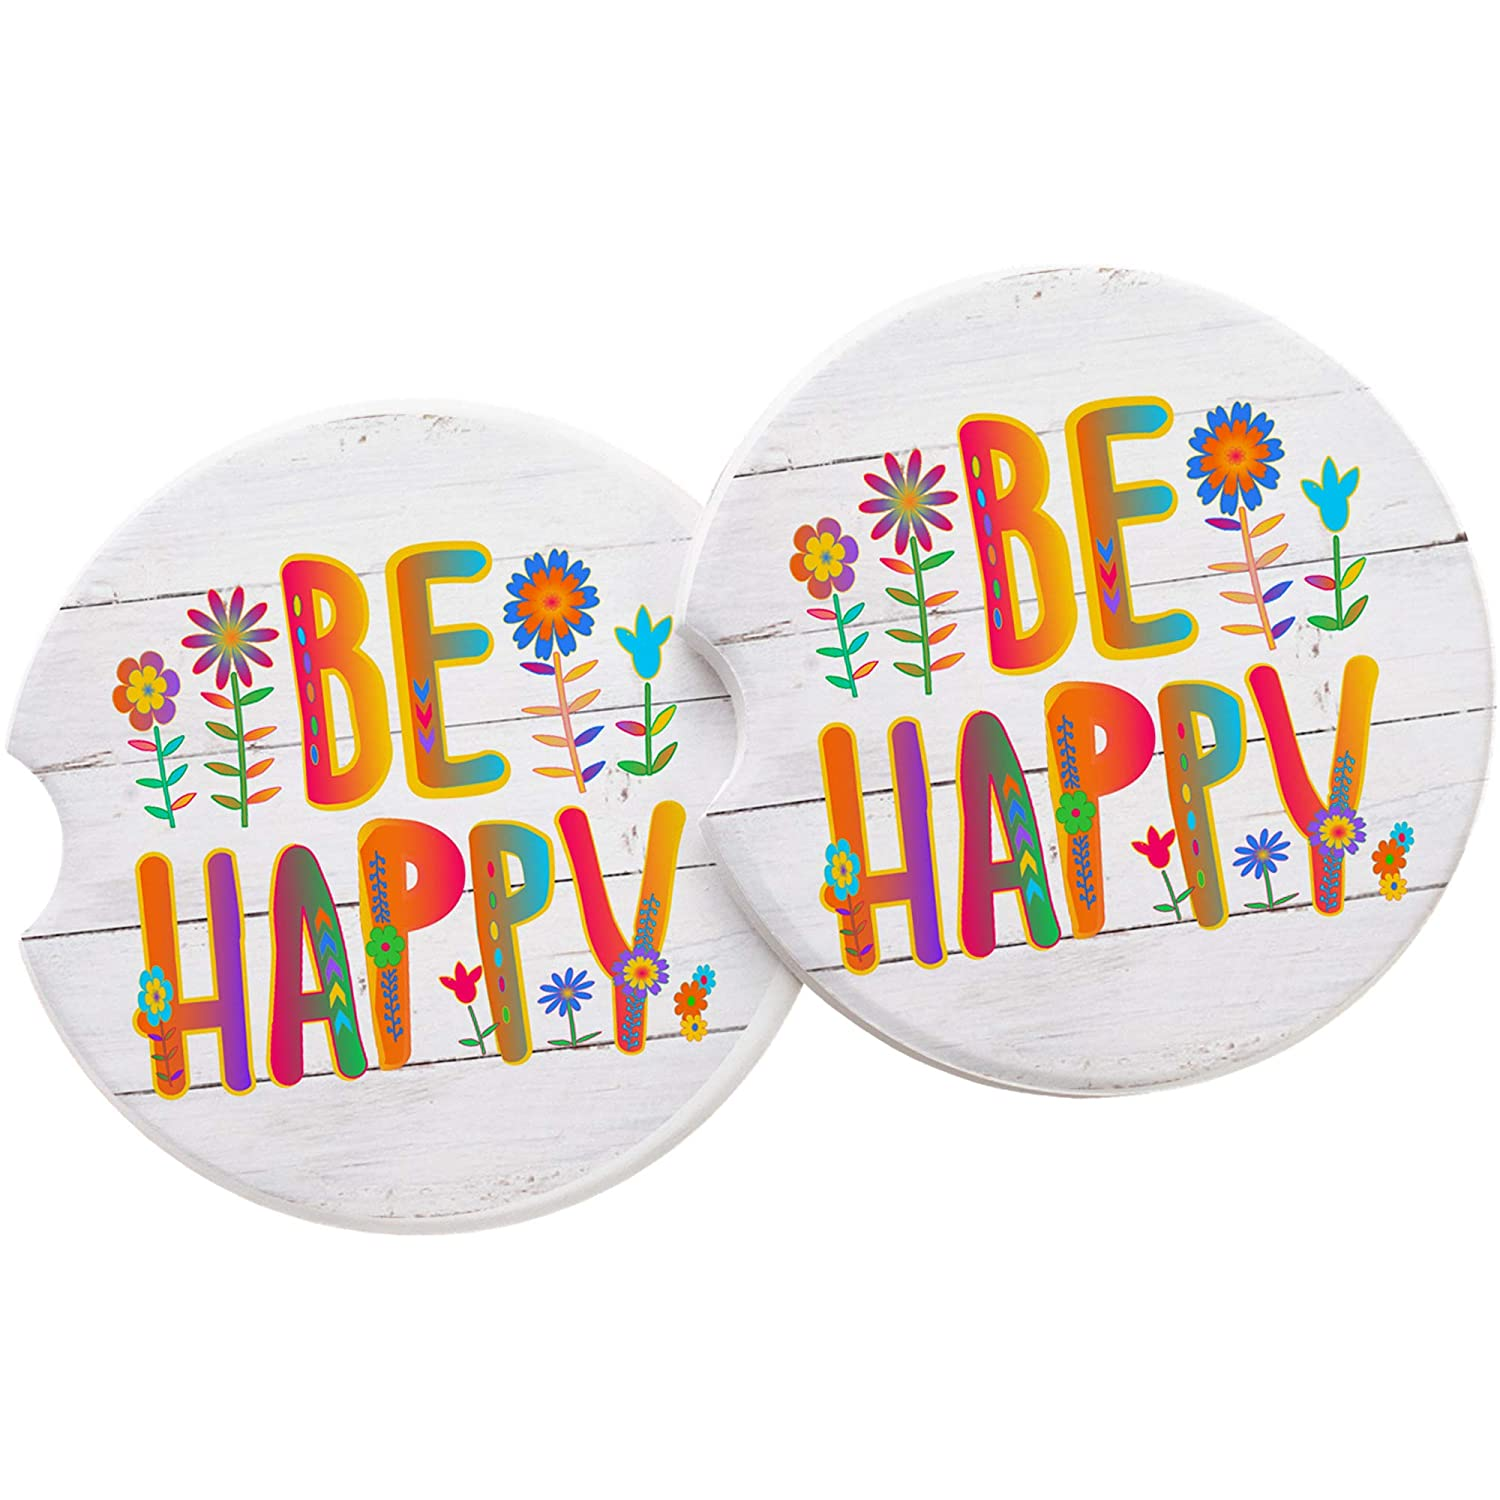 Be Happy Sandstone Car coaster Quote in Rainbow Colors and Whimsical Flowers on a Distressed Wood Image Background SET OF 2 Absorbent Auto Cup Holder Coasters